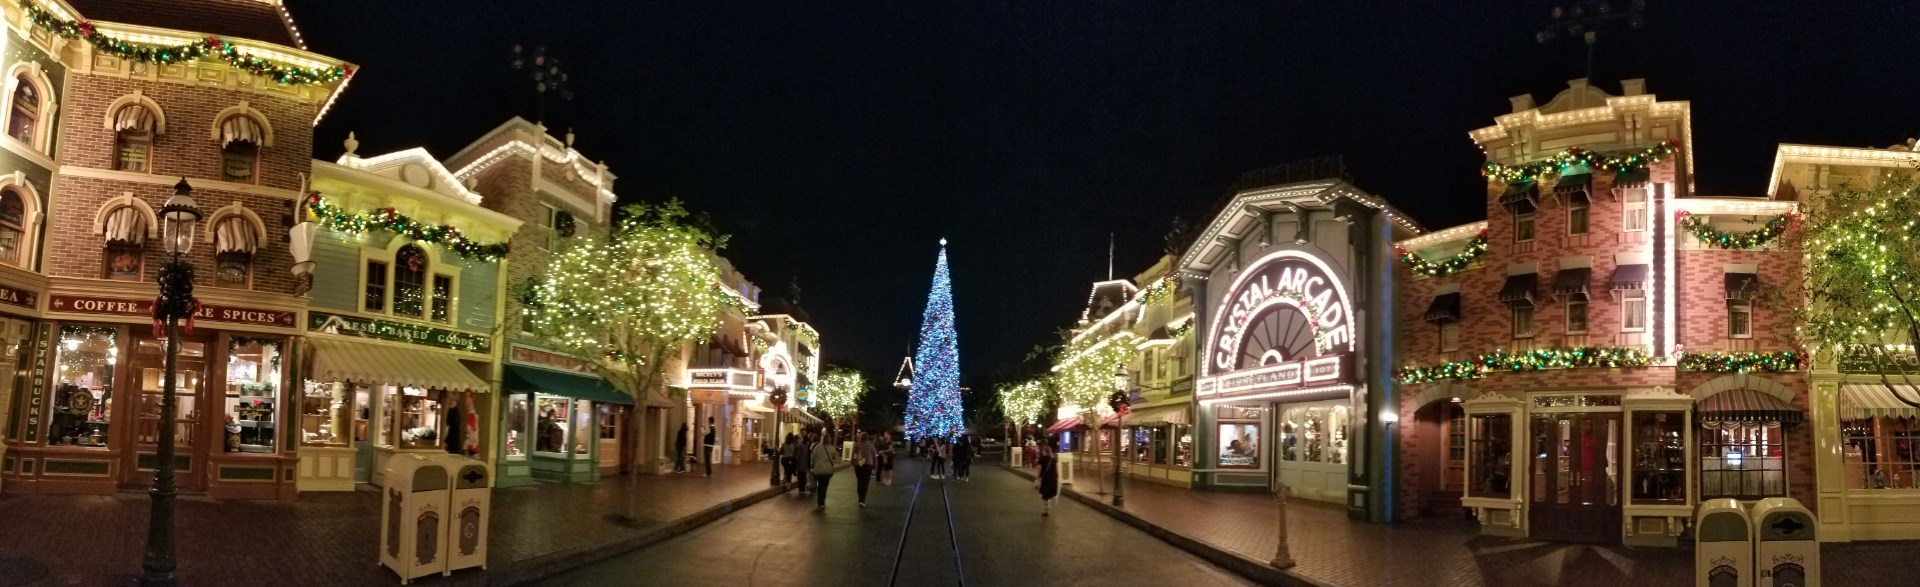 MOONLIGHT MAGIC brings DVC members holiday cheer, characters, and treats at Disneyland